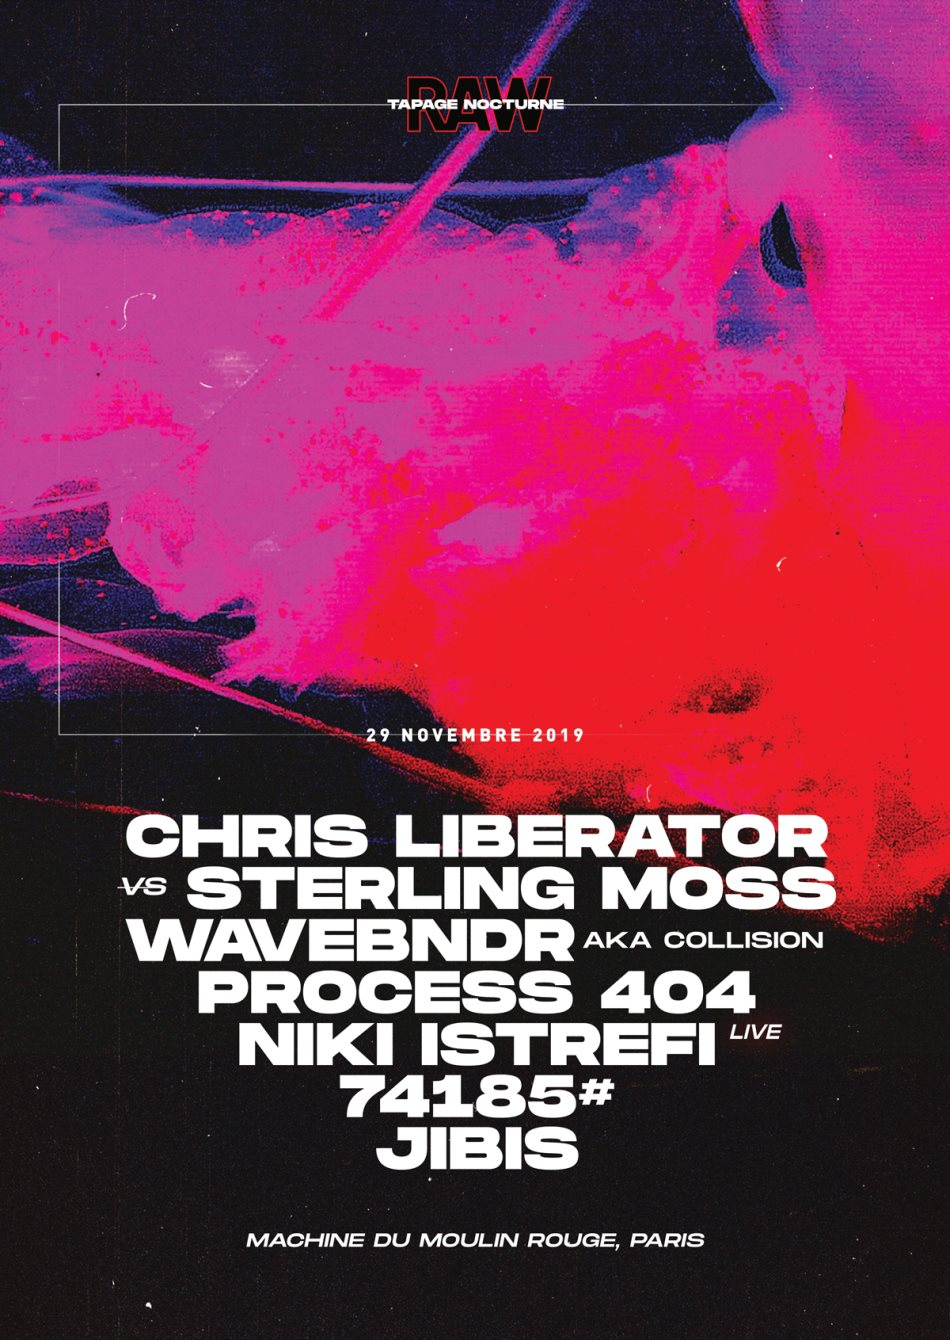 RAW x Tapage Nocturne - Chris Liberator vs Sterling Moss & More - Flyer front